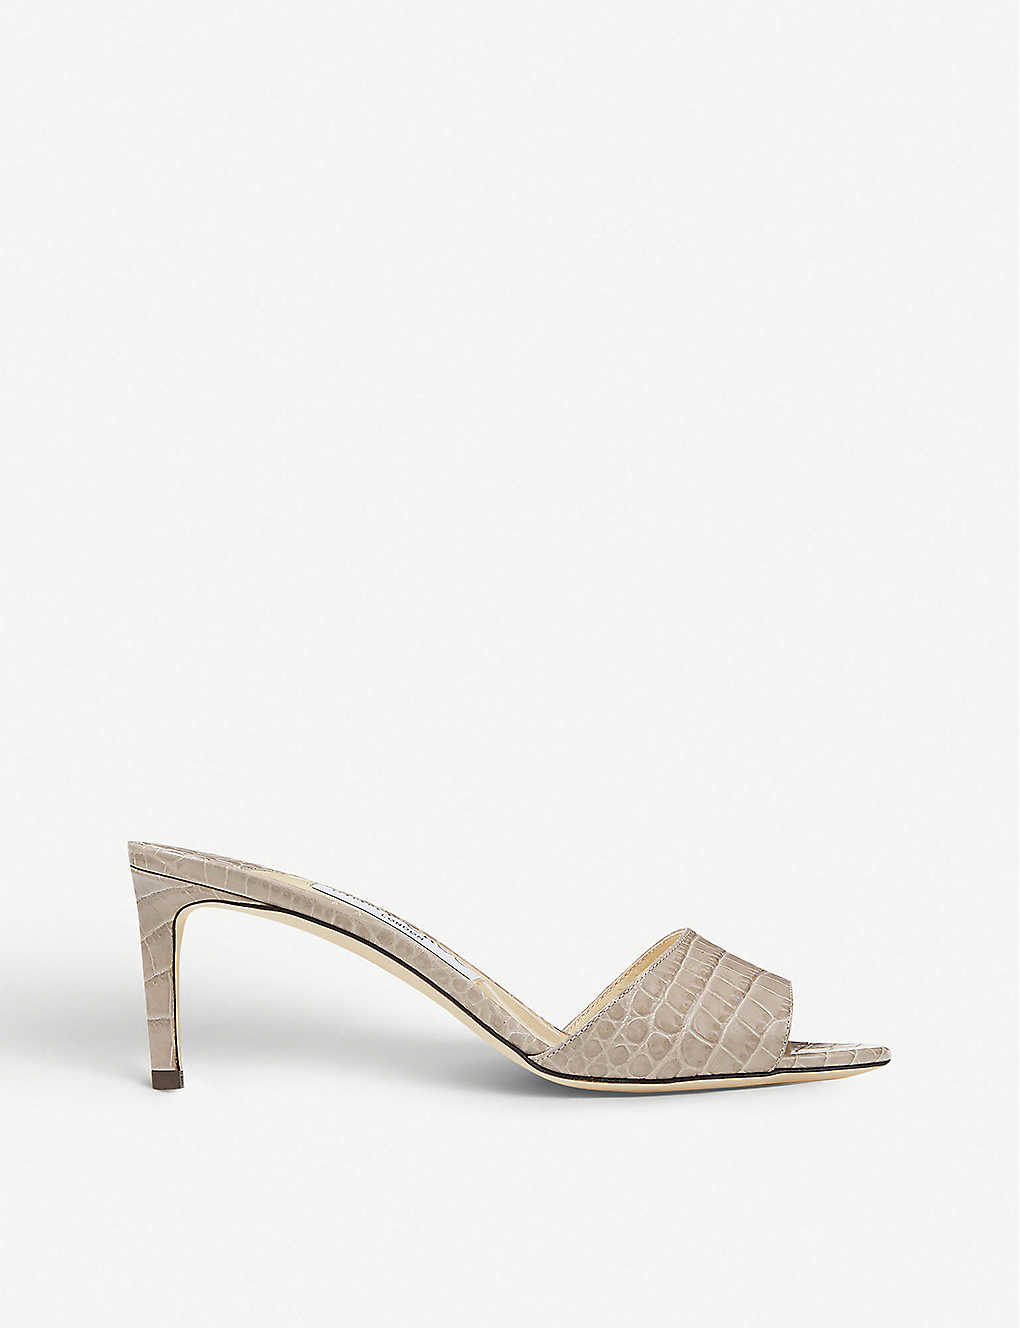 JIMMY CHOO: Stacey 65 croc-embossed leather mules